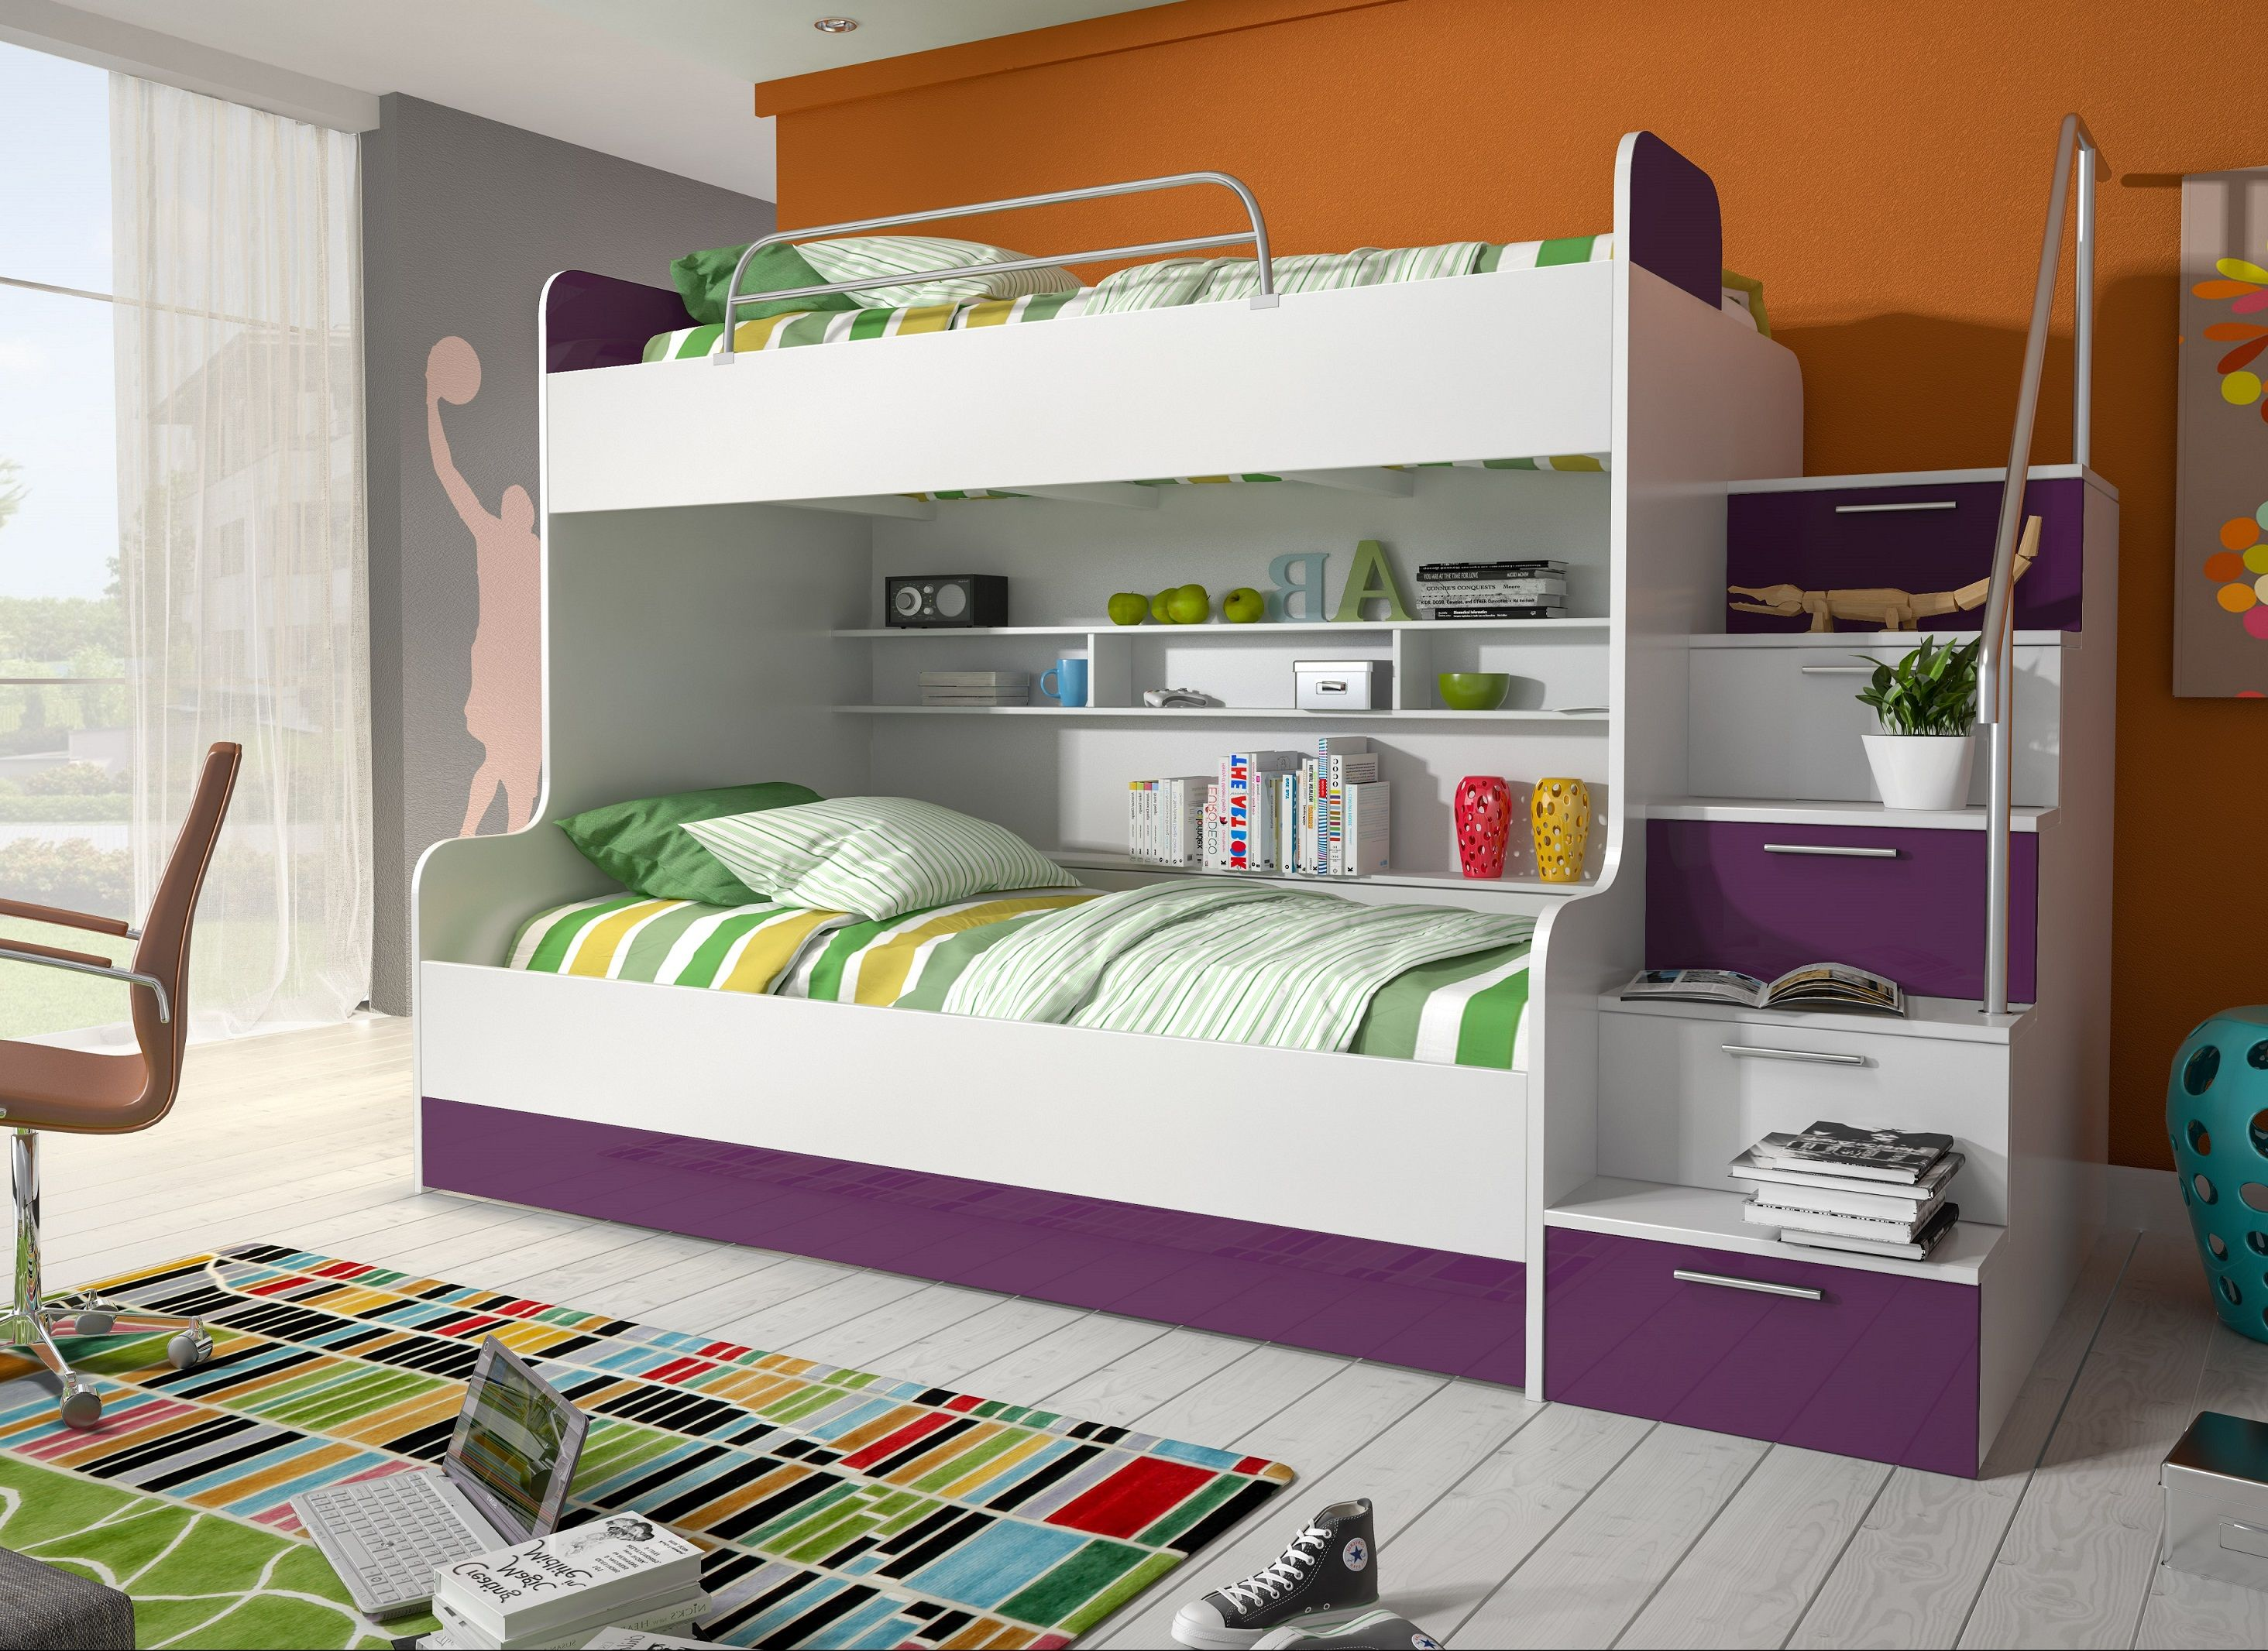 etagenbett kinderbett lila mit seitlicher treppe rechts kinderzimmer pinterest bett. Black Bedroom Furniture Sets. Home Design Ideas